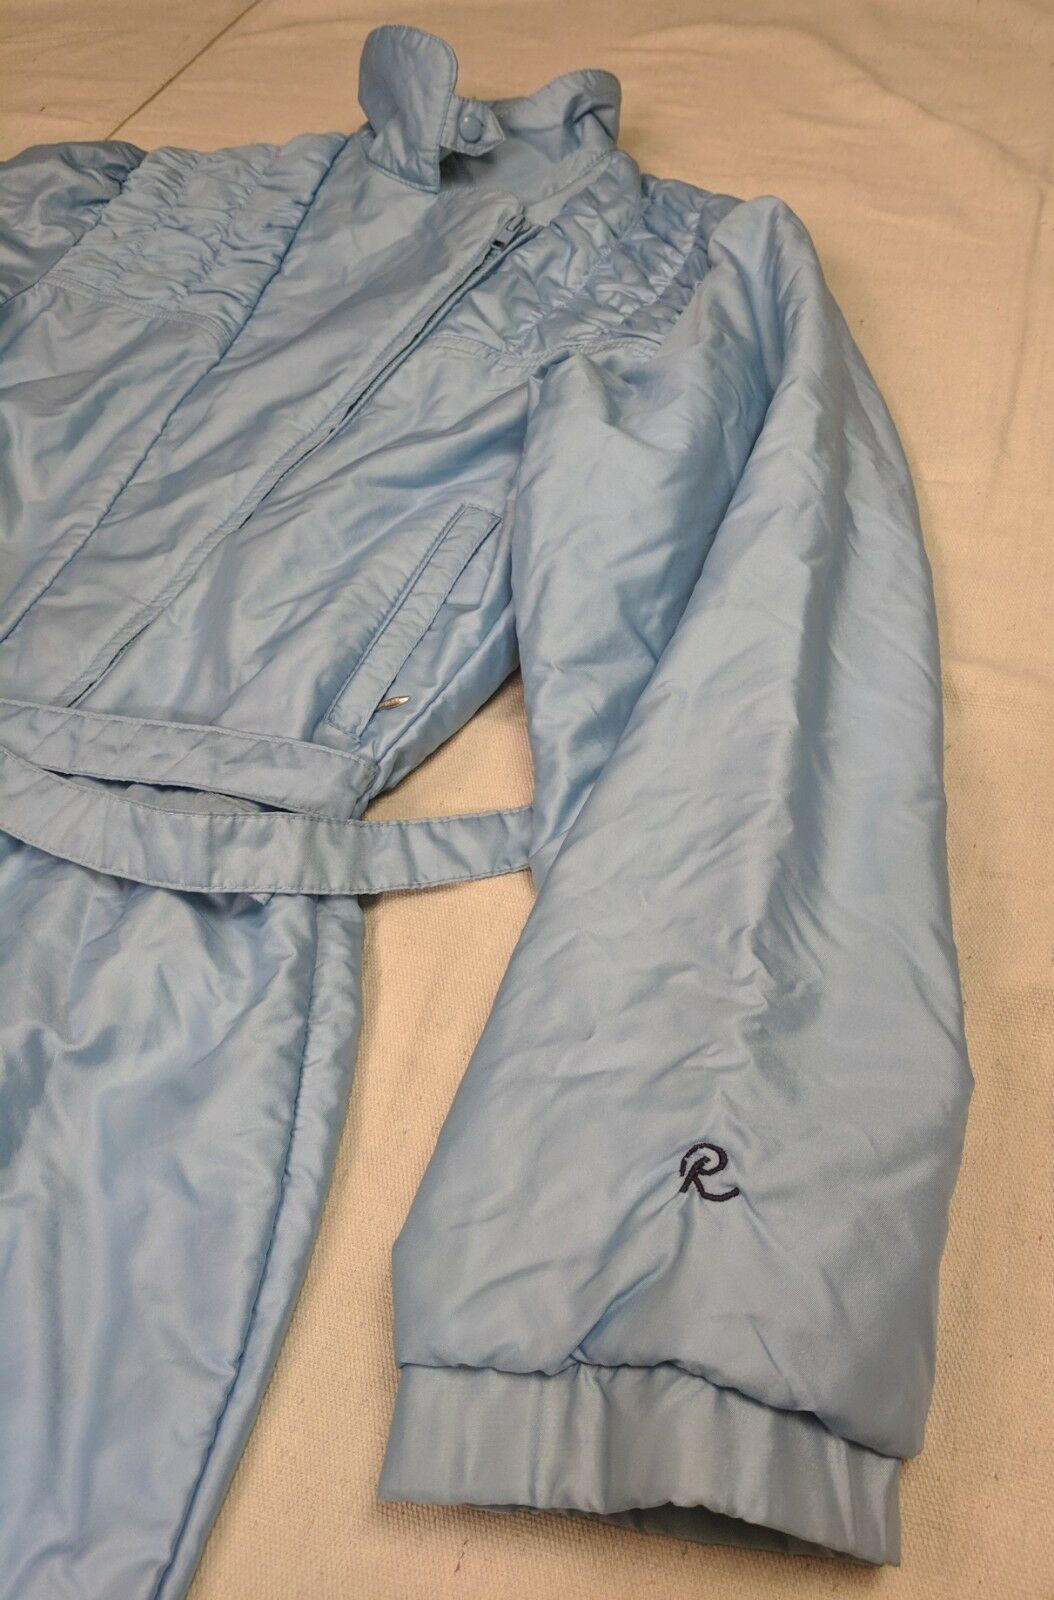 Roffe USA VTG 80's Women's one piece Ski Suit Size 8 Sky blueee GAPER DAY